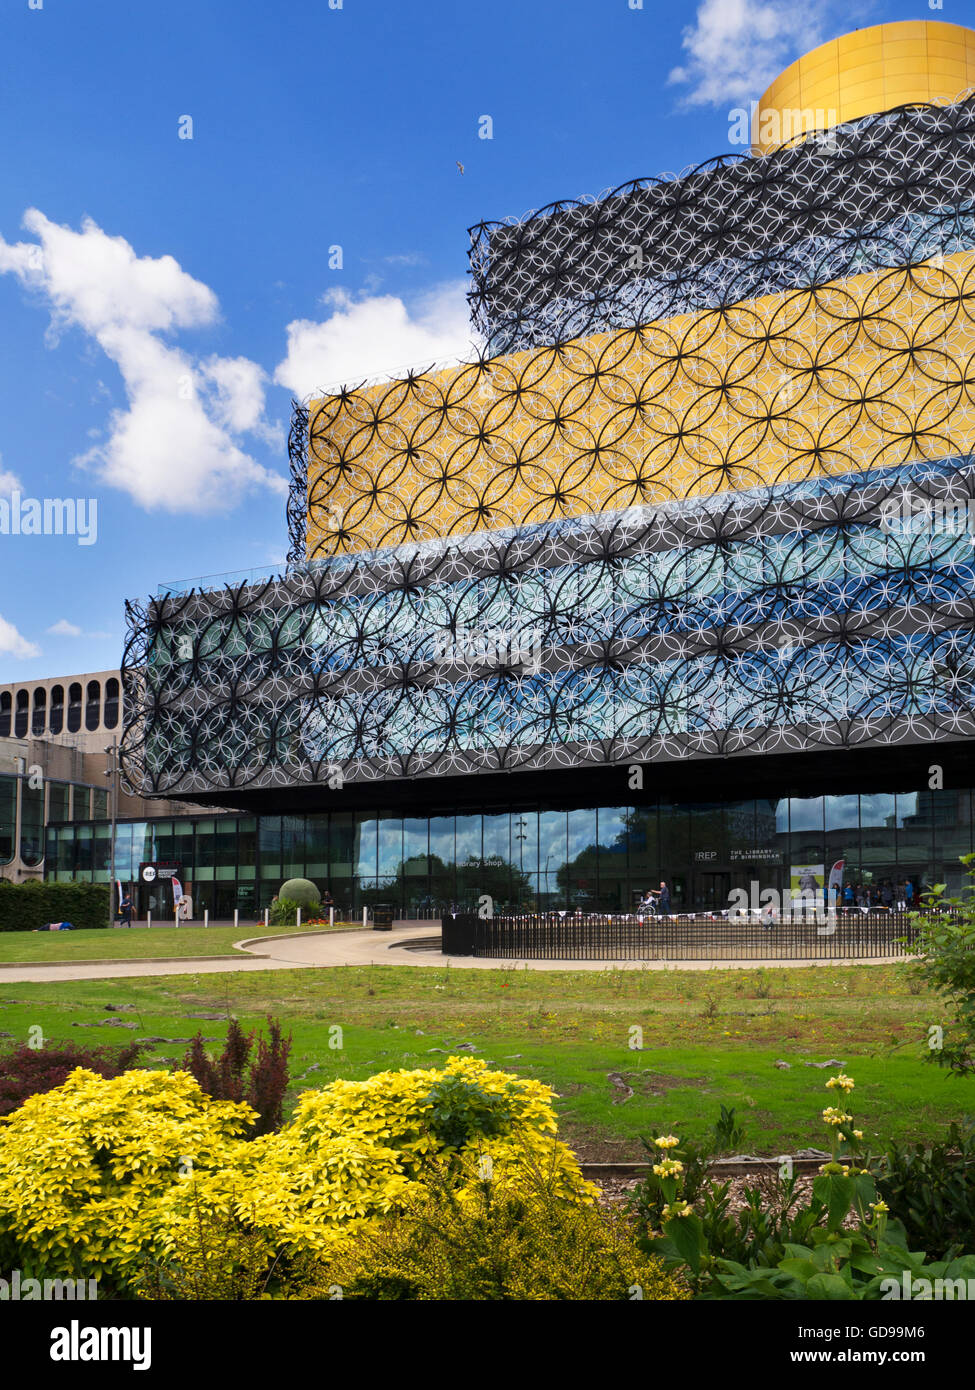 Library of Birmingham Building and The Rep in Centenary Square Birmingham West Midlands England - Stock Image